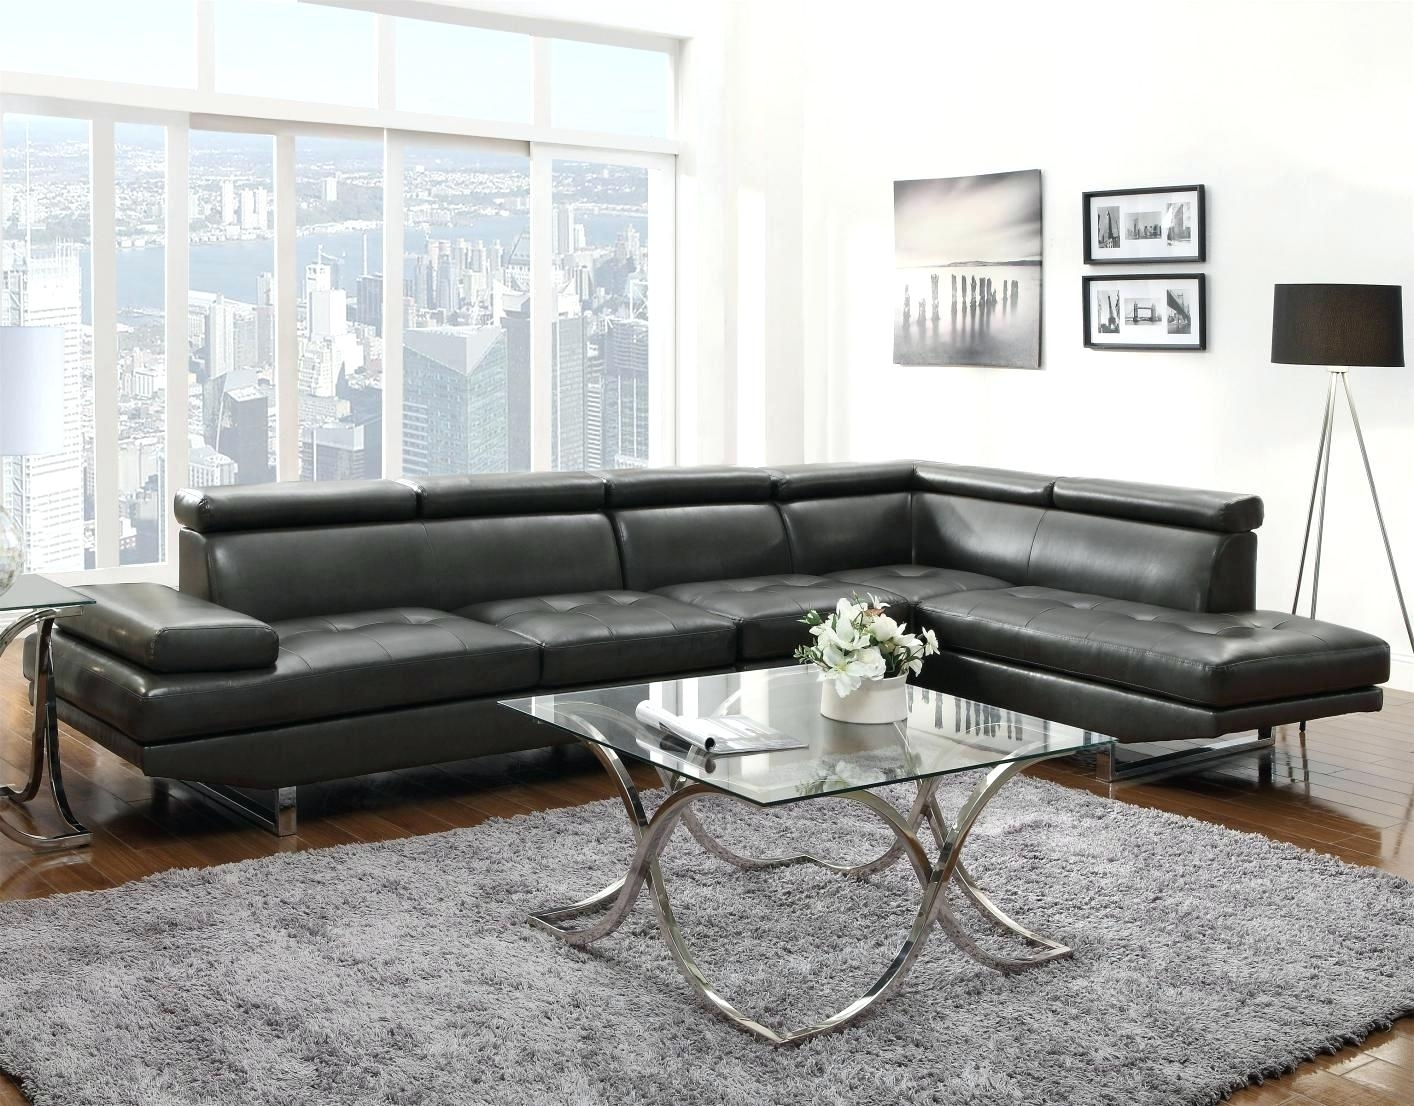 Leather Sectional Sofas Lear Furniture Canada Sofa Memphis Tn Used Throughout Memphis Tn Sectional Sofas (Image 7 of 10)